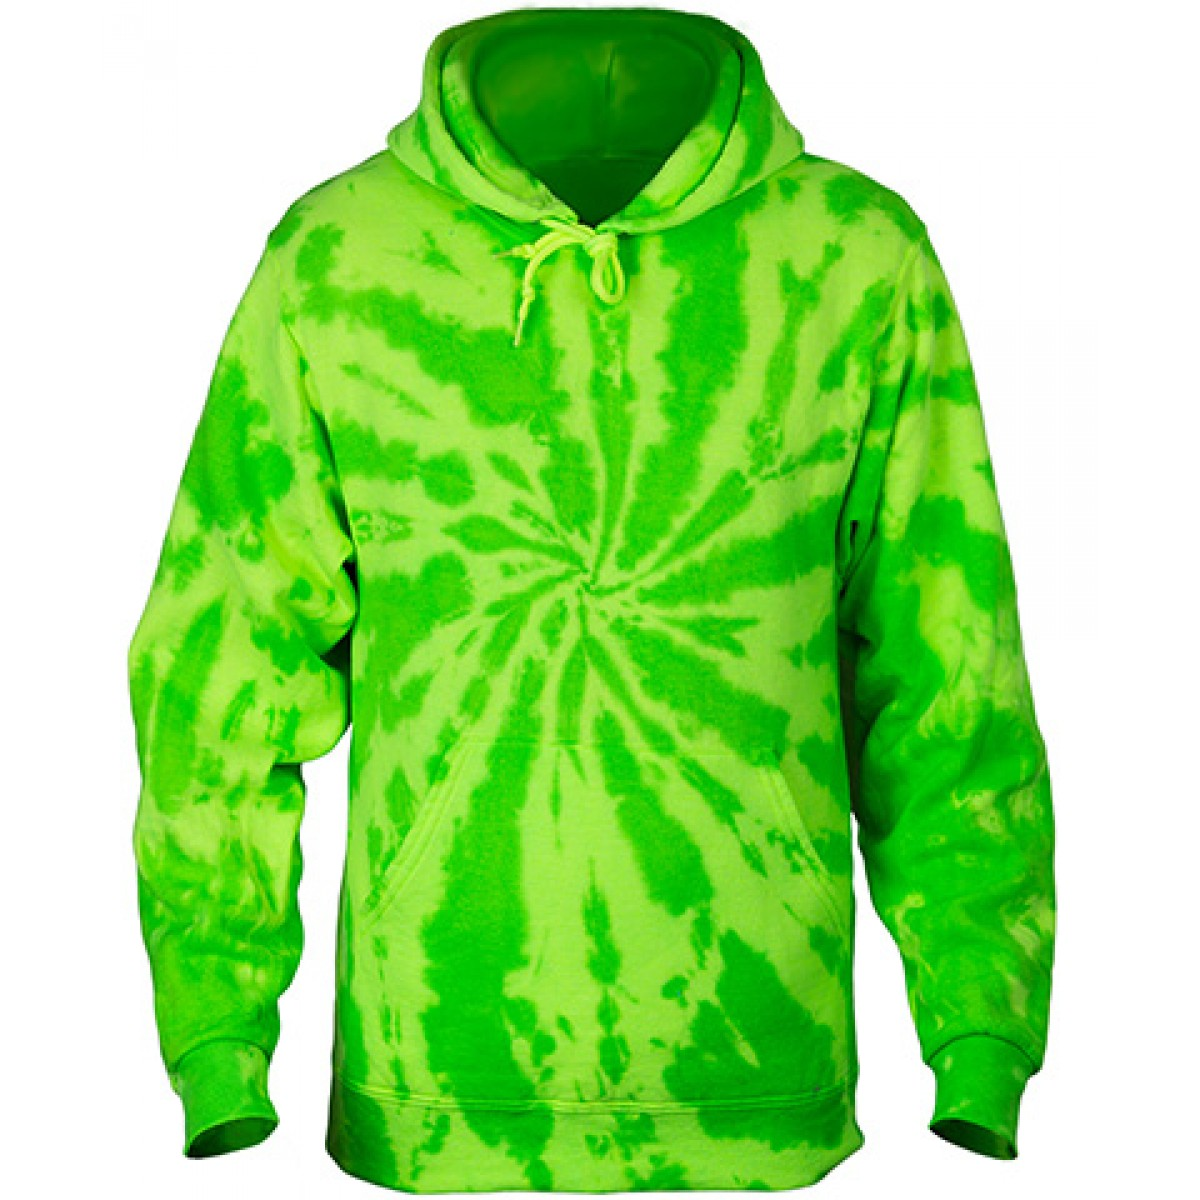 Tie-Dye Pullover Hooded Sweatshirt-Neon Green-XL